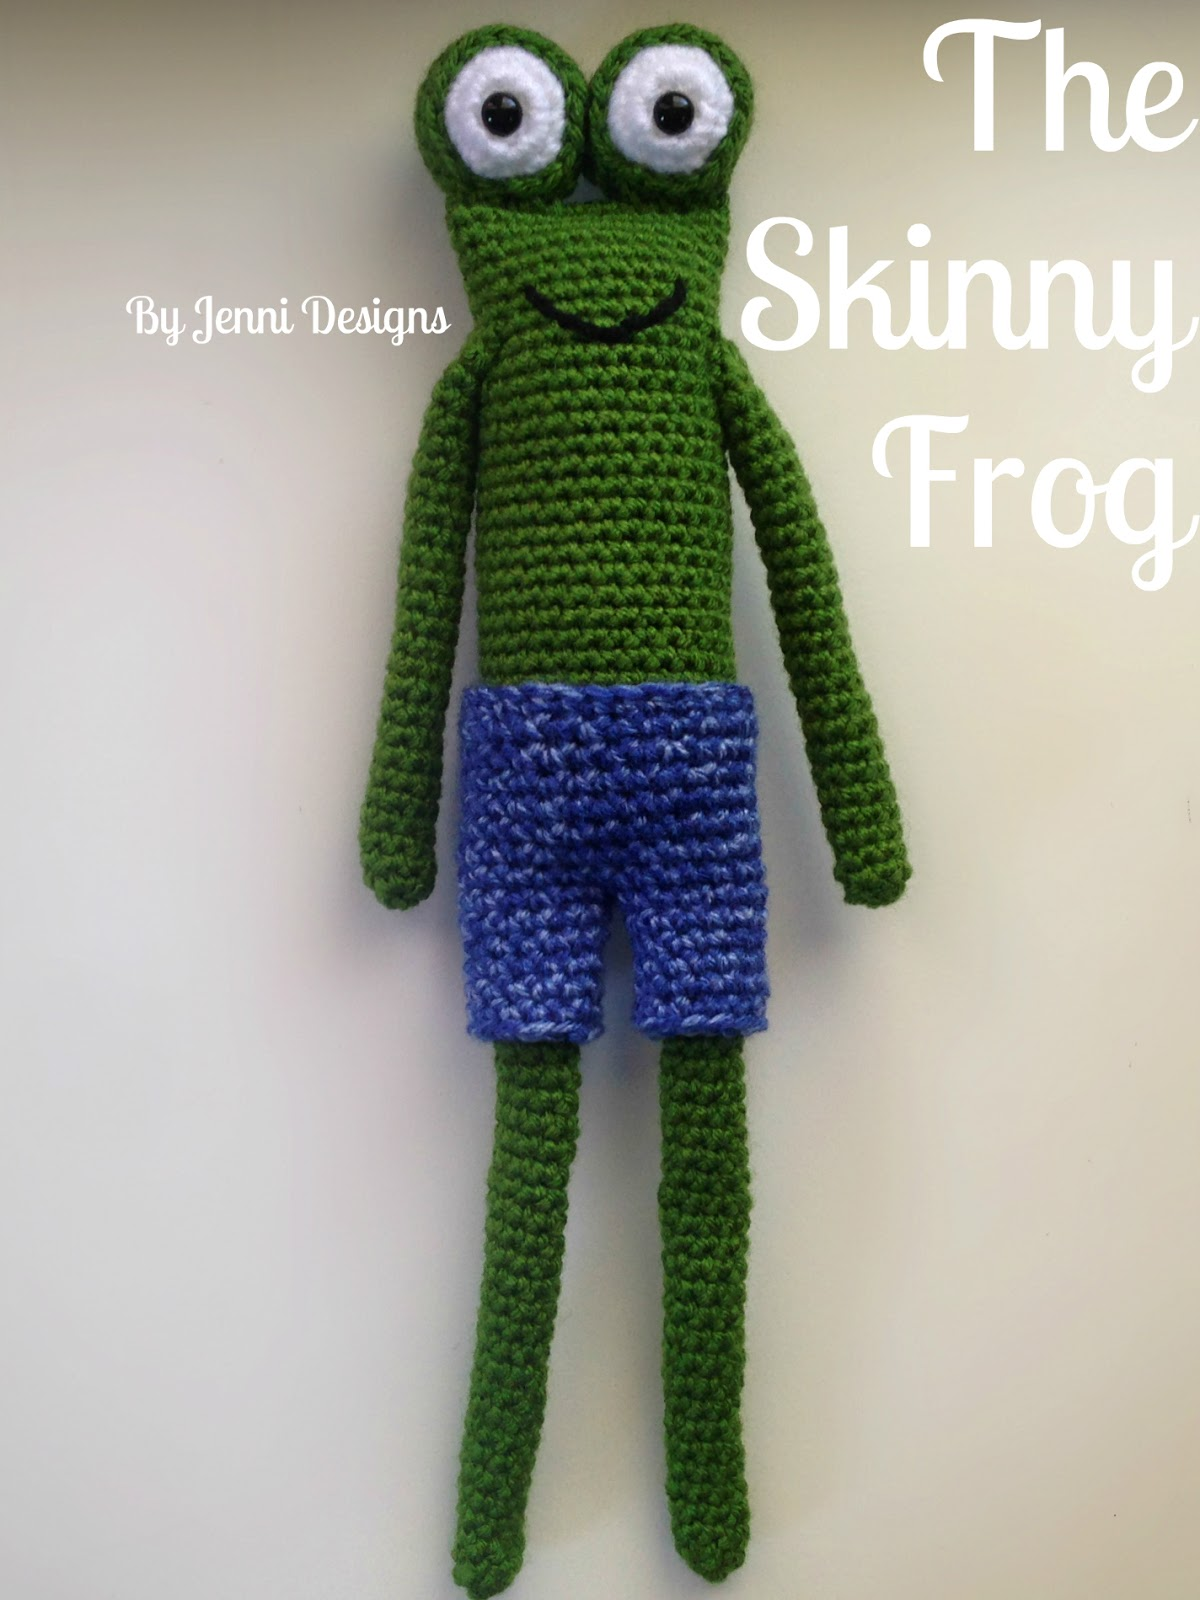 Best Frog Crochet Patterns Amigurumi Hats And More | The WHOot | 1600x1200